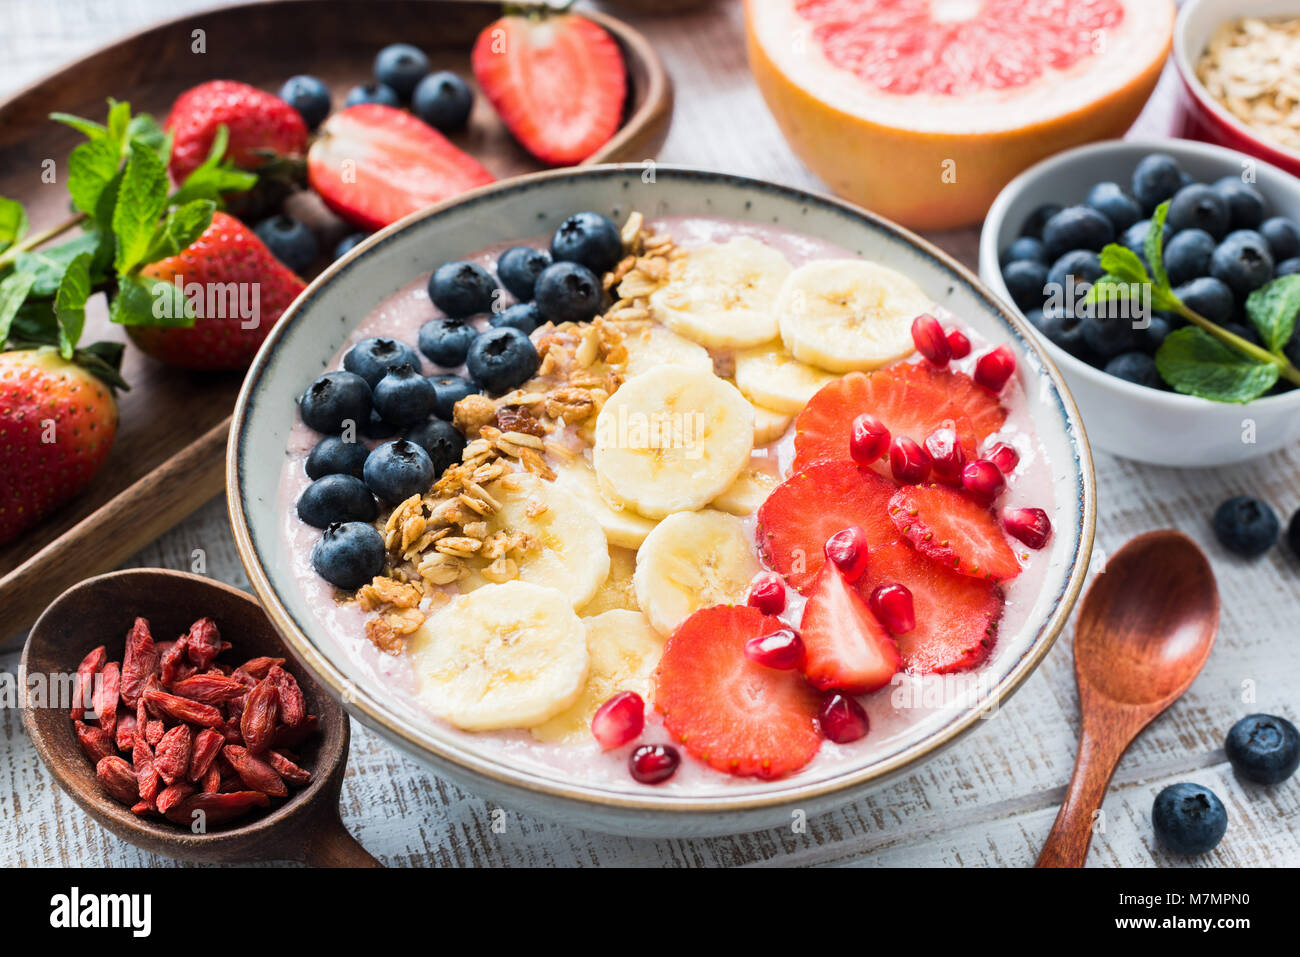 Smoothie bowl with strawberry, banana, blueberry, pomegranate and coconut flakes, closeup view. Concept of healthy - Stock Image